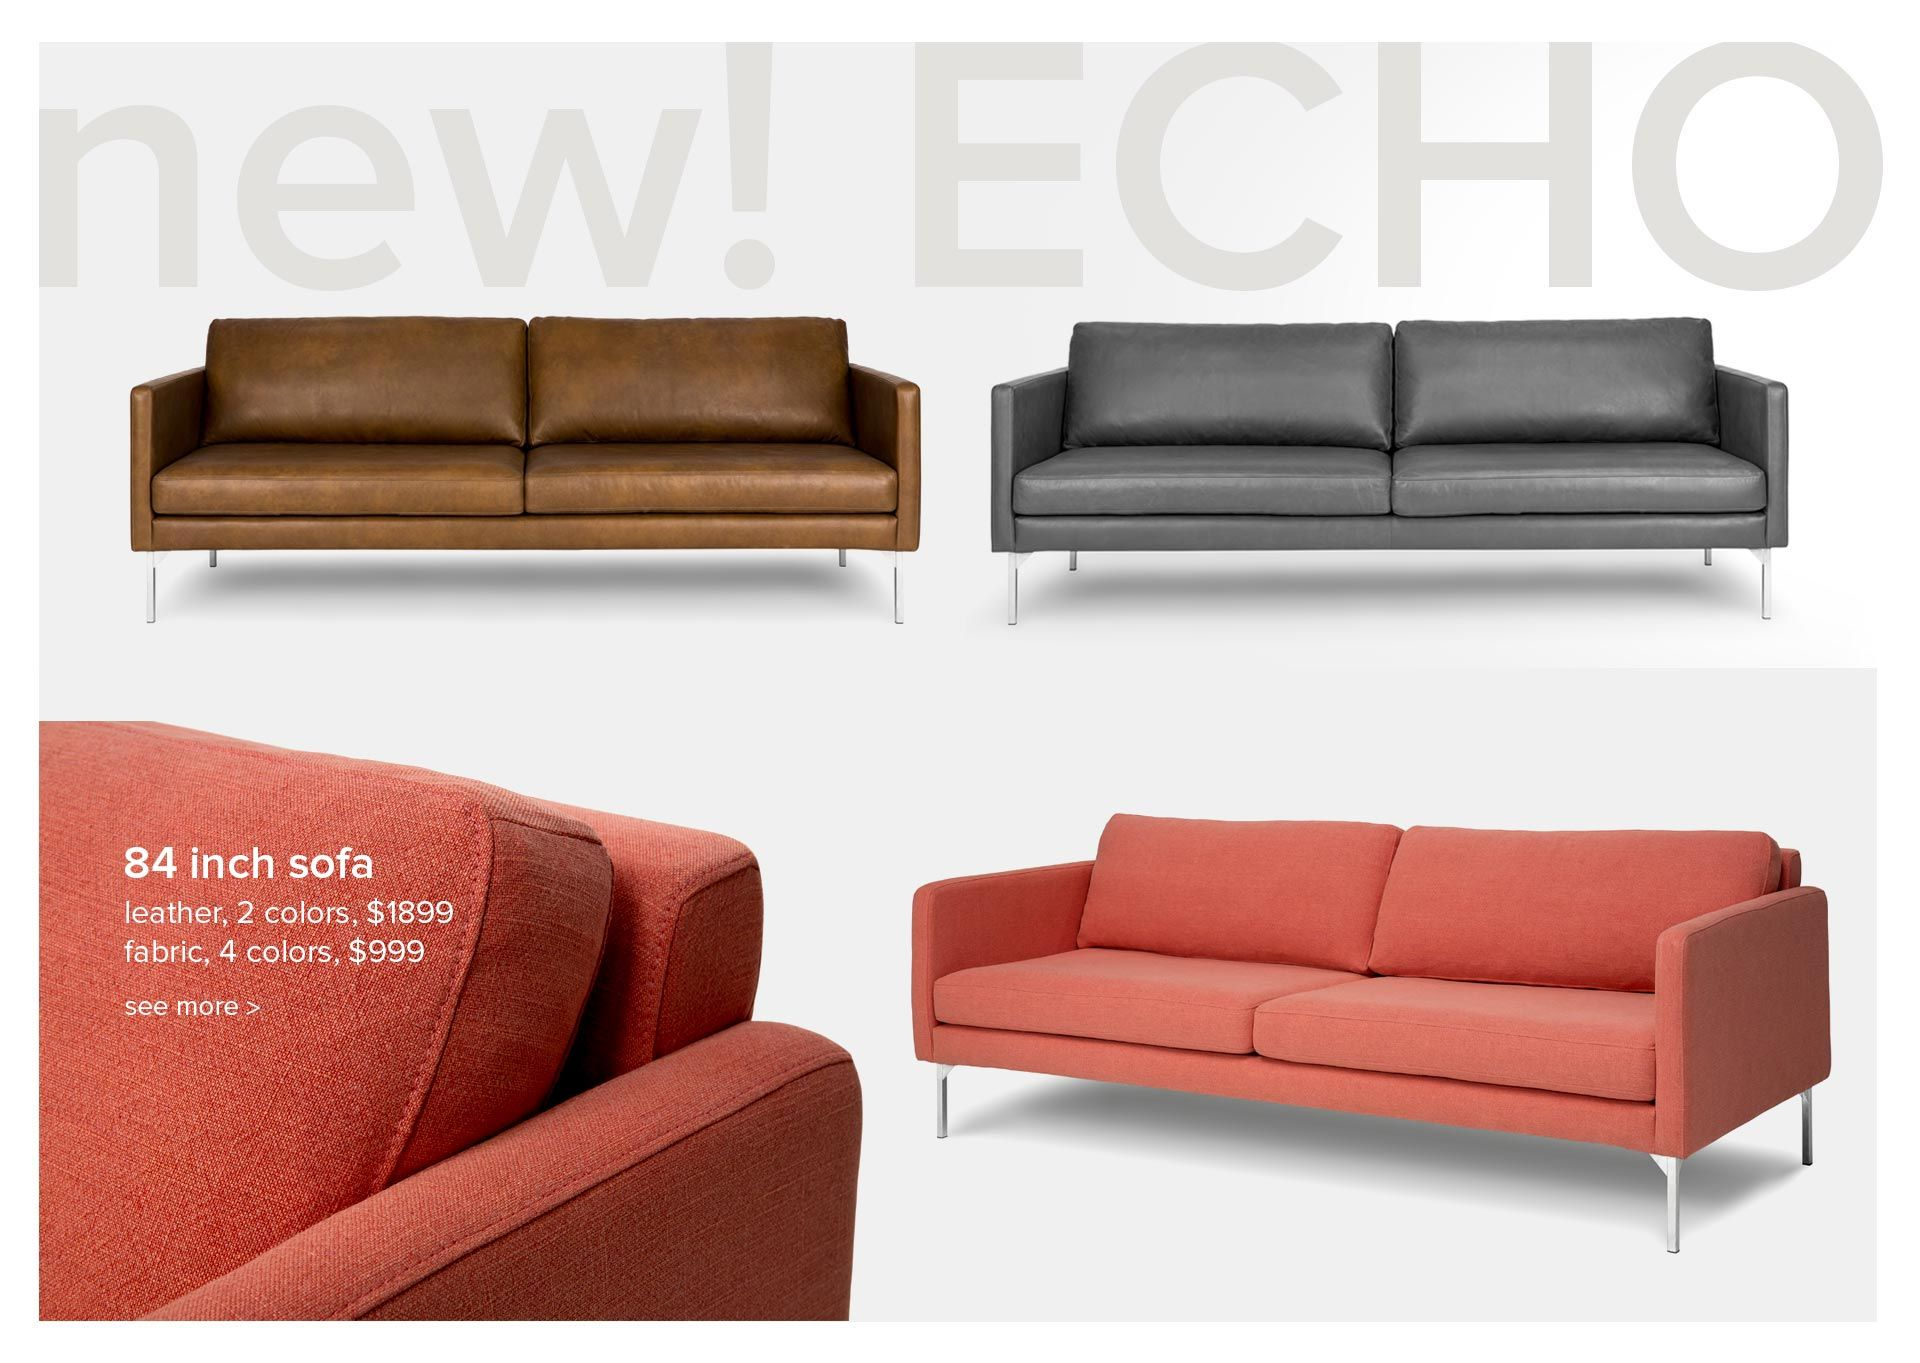 Bryght | Modern, Mid-Century and Scandinavian Furniture